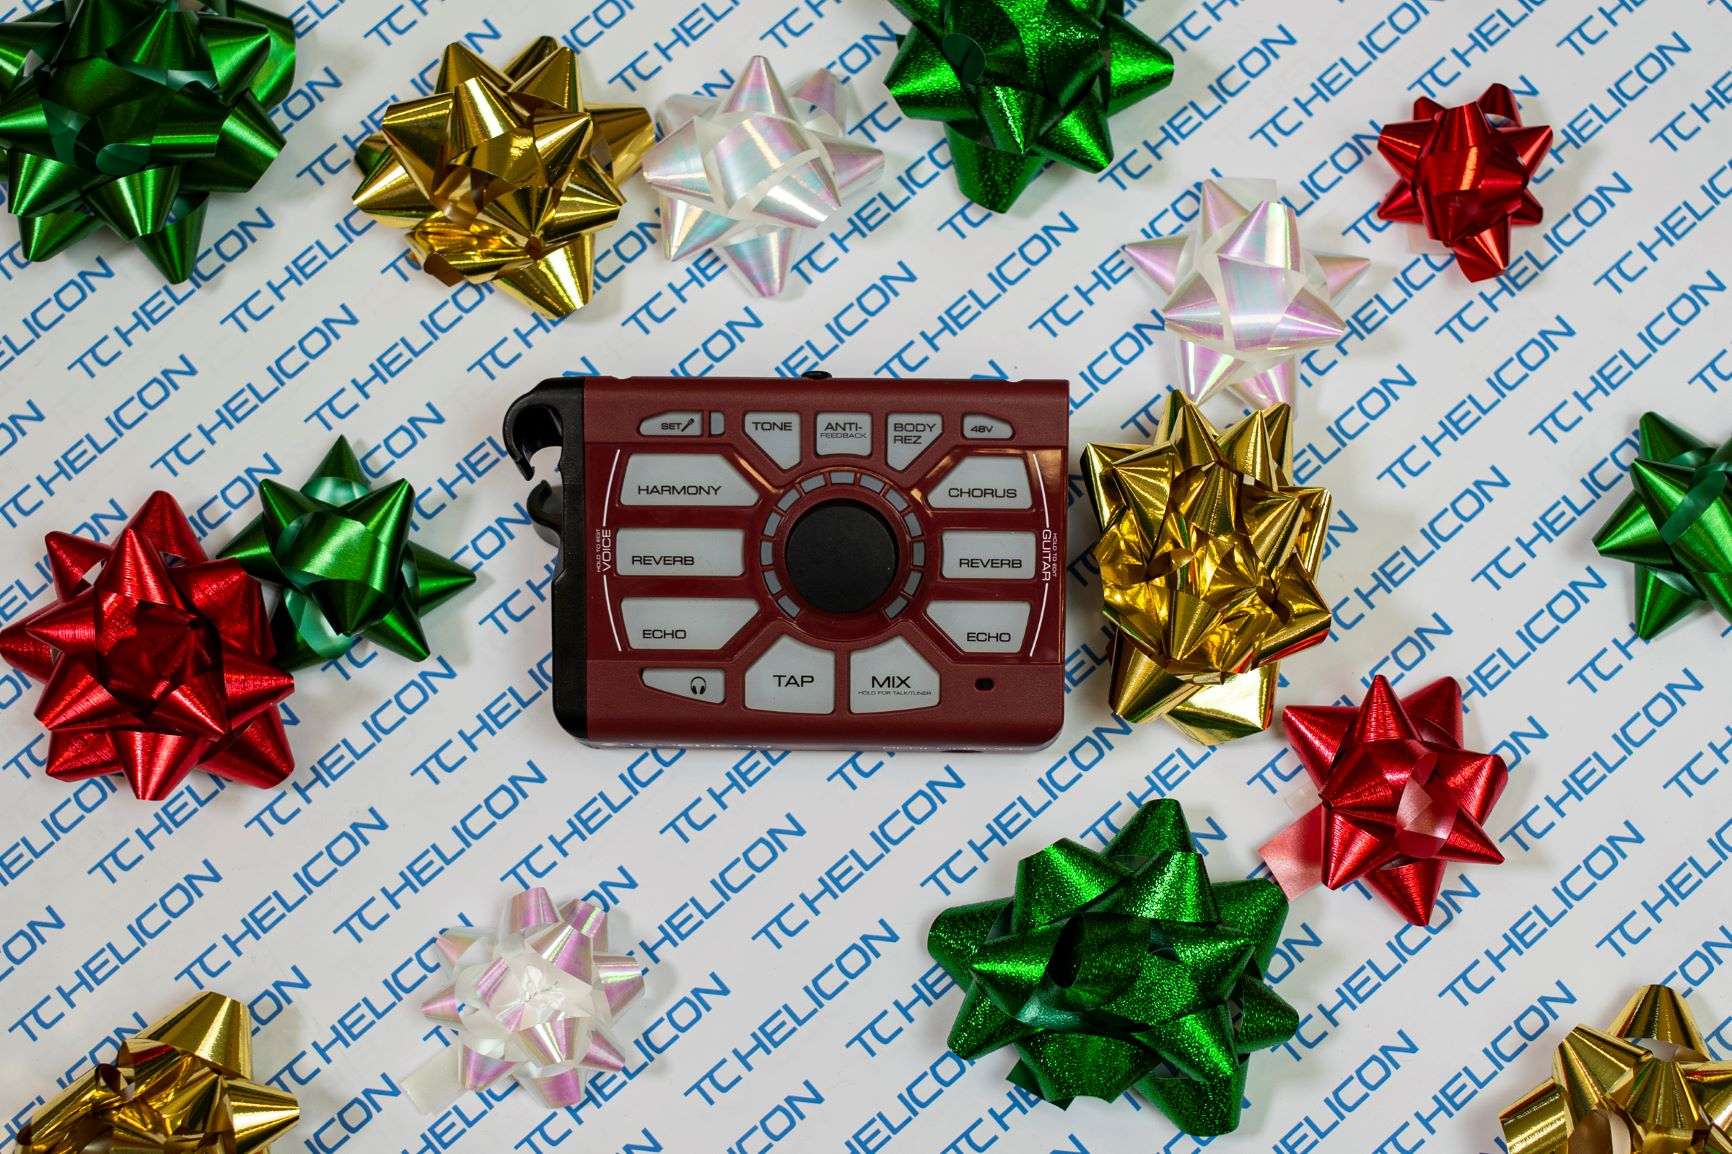 TC Helicon Holiday Giveaway (Perform VG) Giveaway Image